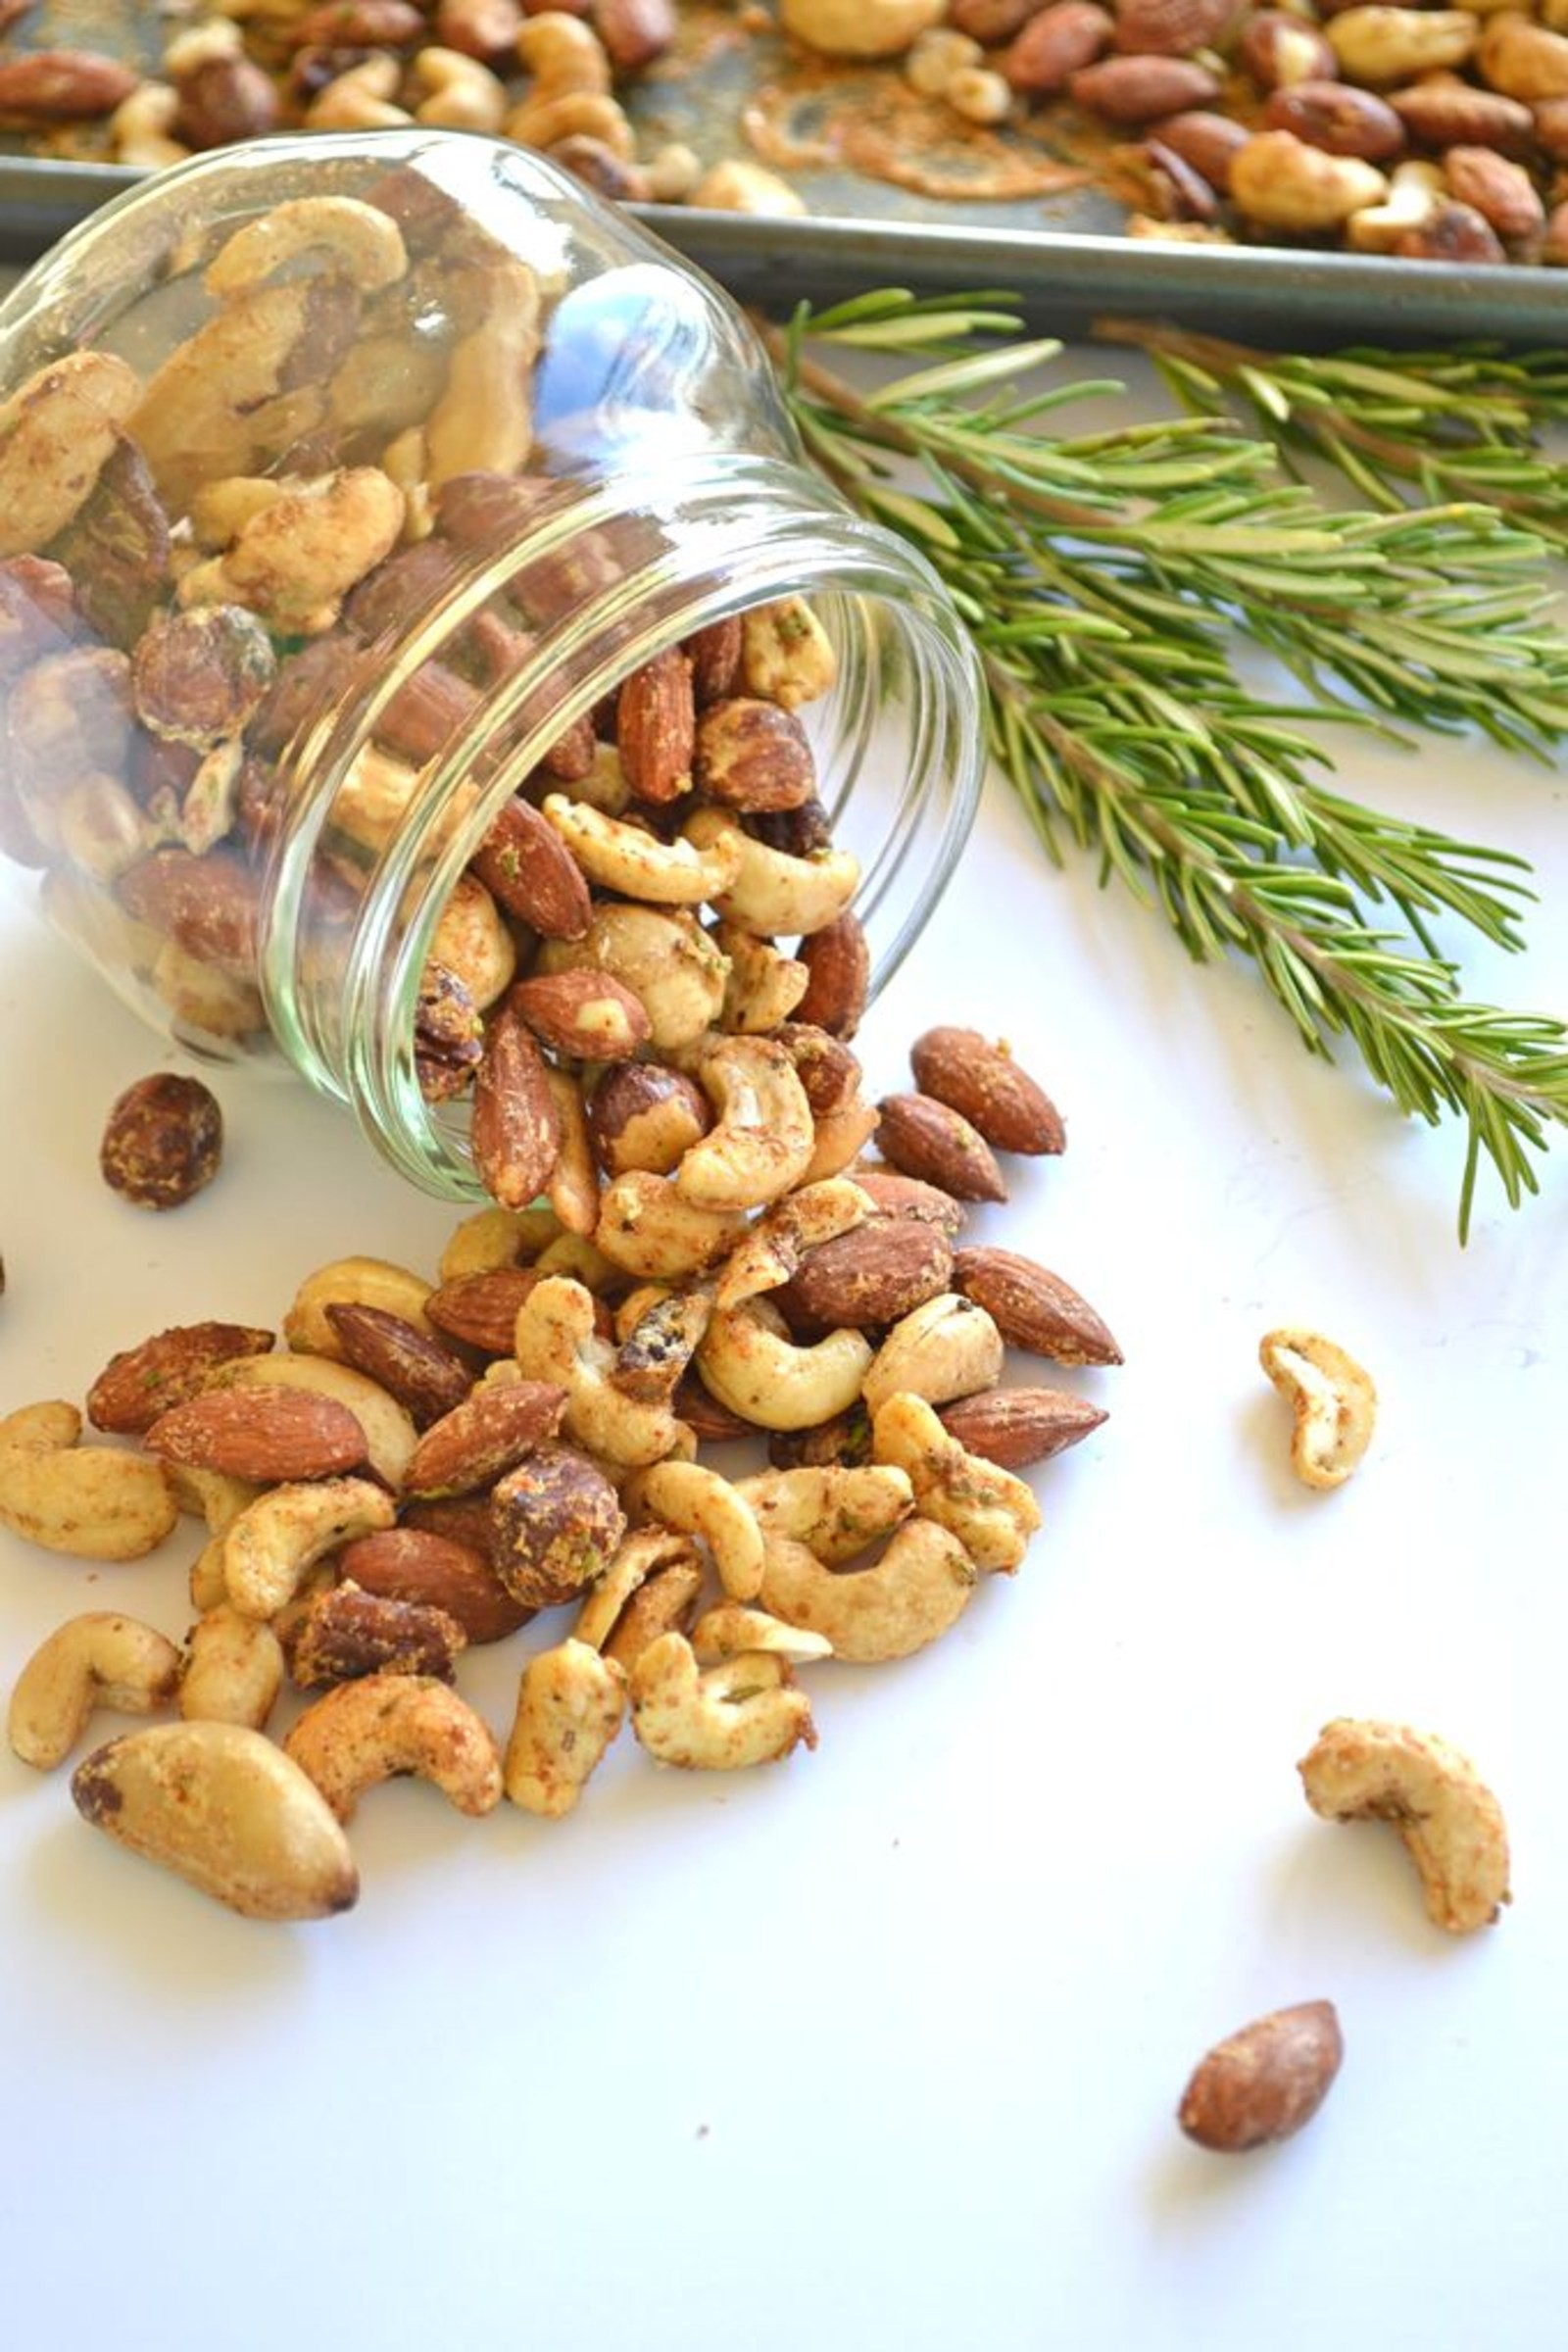 -garlic-herb-roasted-nuts-paleo-and-done-in-minutes-E509c3ffd22cb068f823eb6a79d0c3bd0